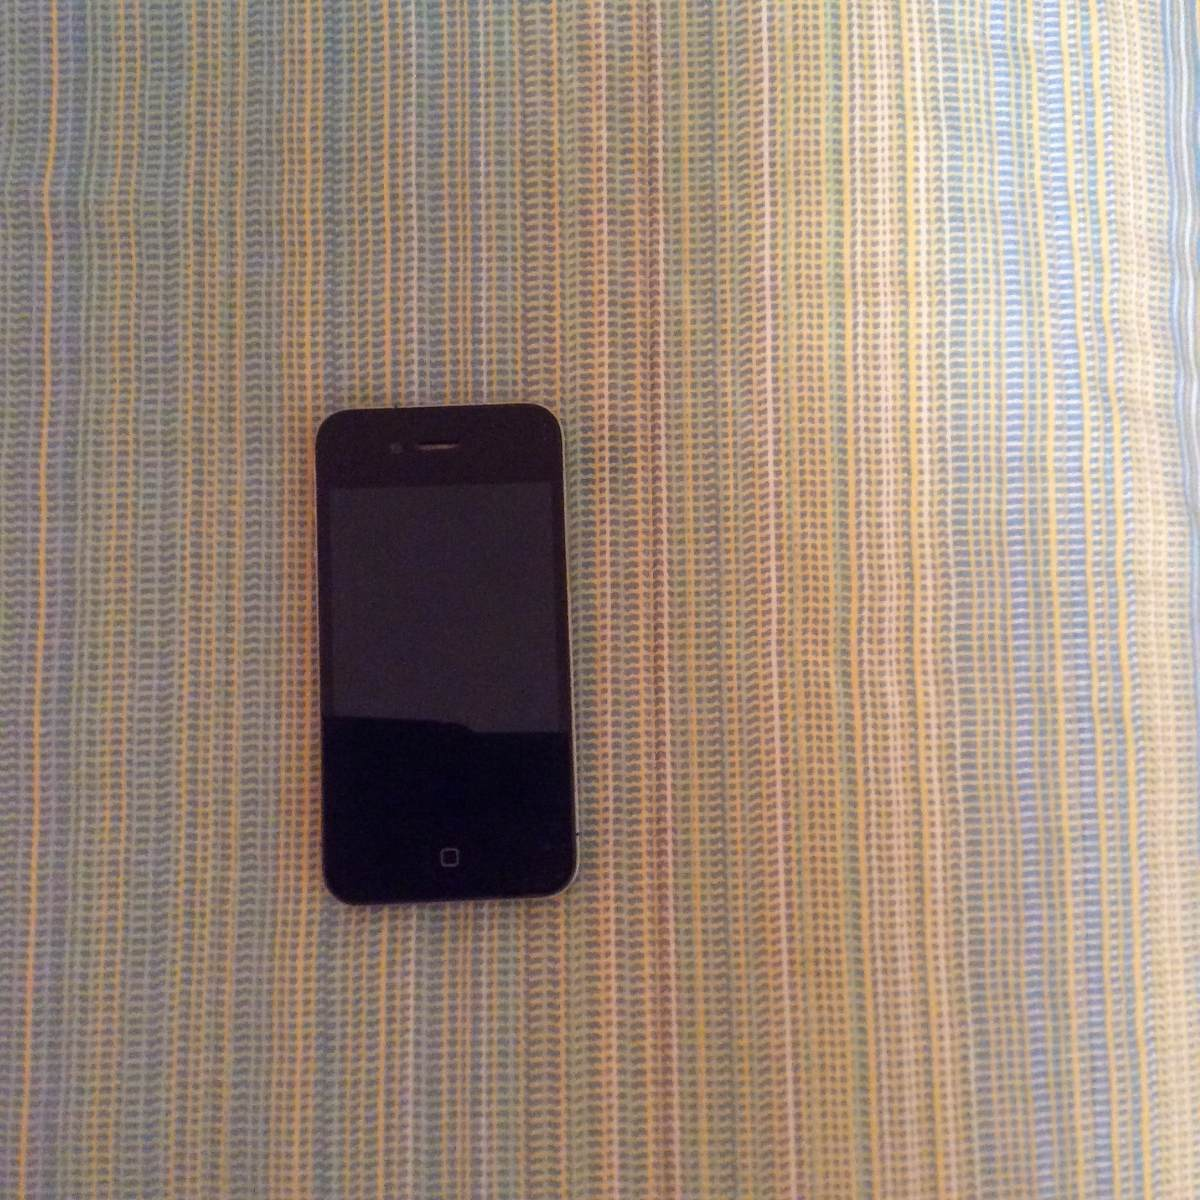 Vender Iphone 4 Libre Iphone 4 De 16 Gb 1 600 00 En Mercado Libre